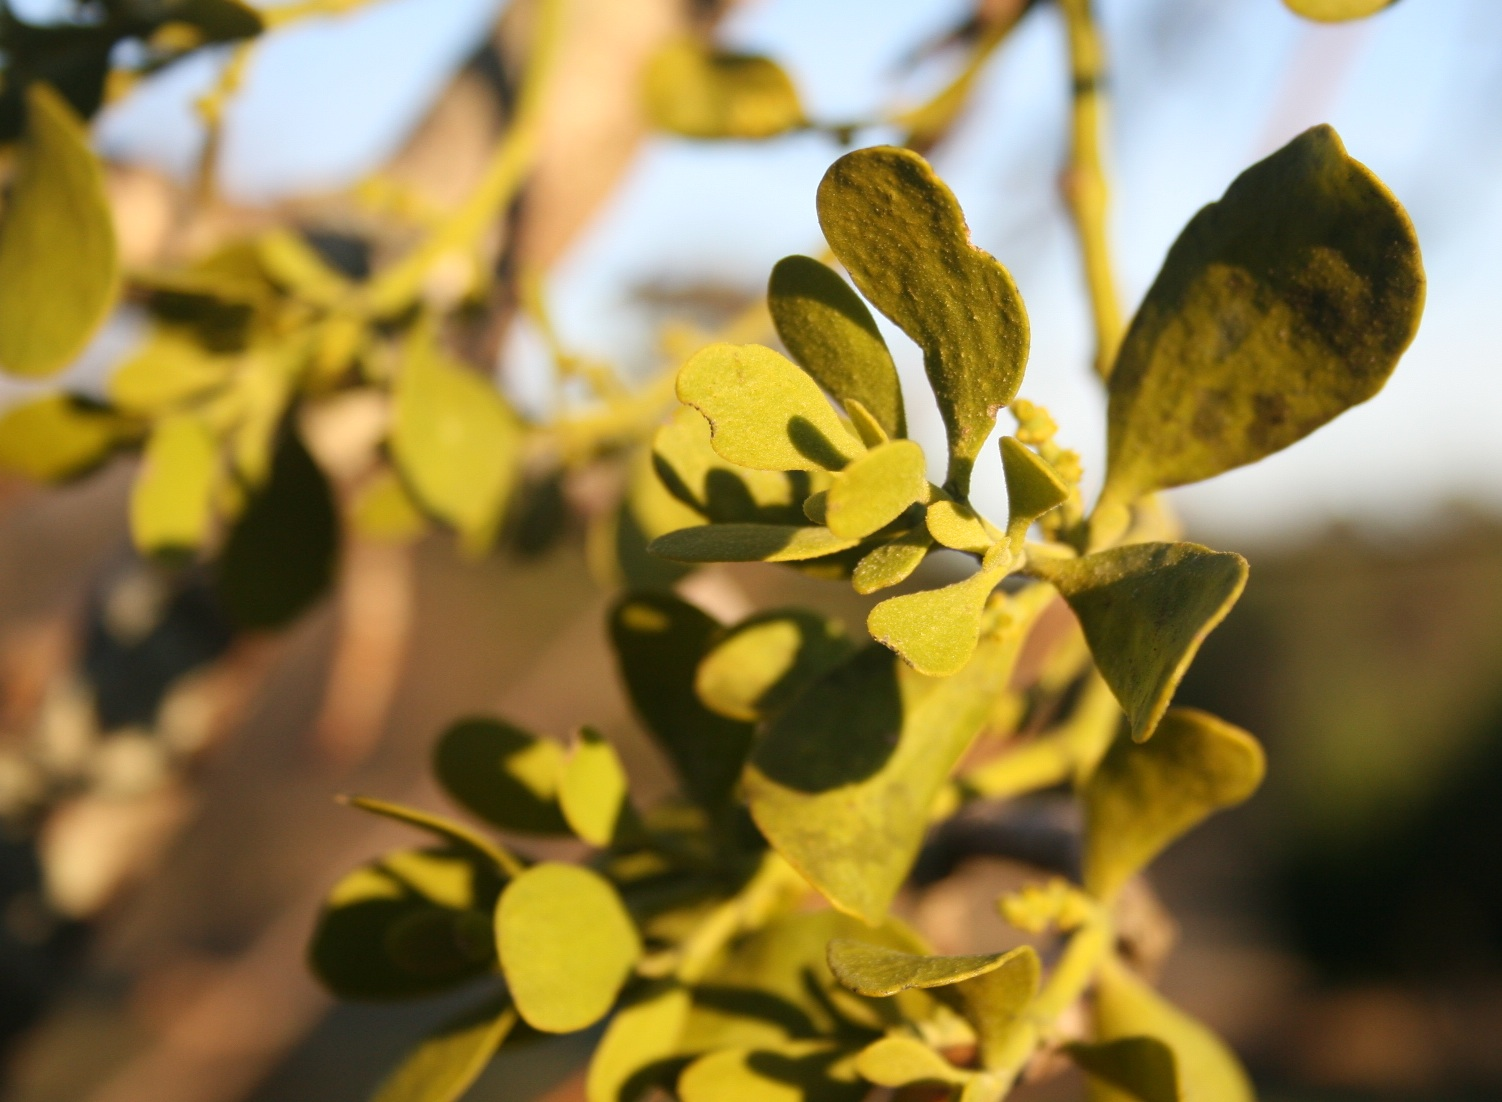 Sweethearts may love mistletoe, but trees don't.  It's actually a parasite that uses the tree as a host.